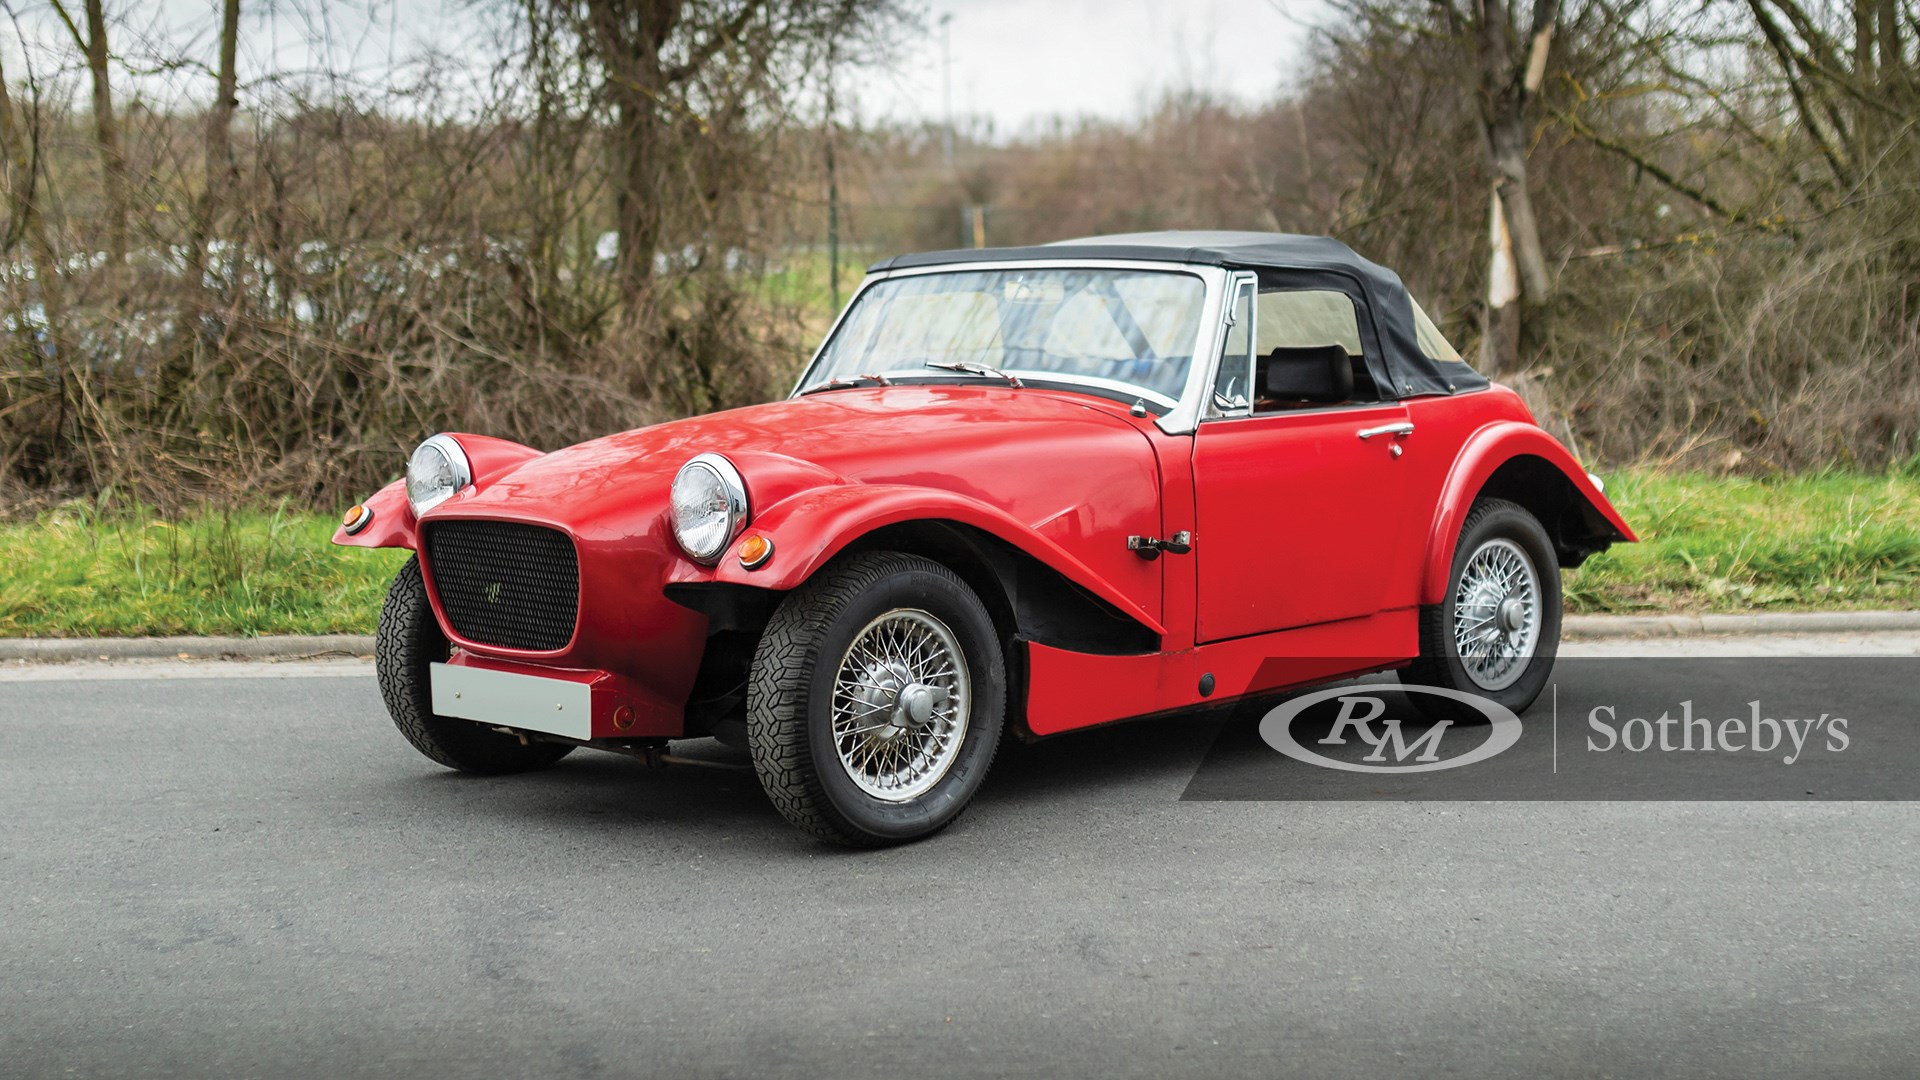 The European Sale Featuring The Petitjean Collection, 1966 Austin-Healey Sprite Arkley